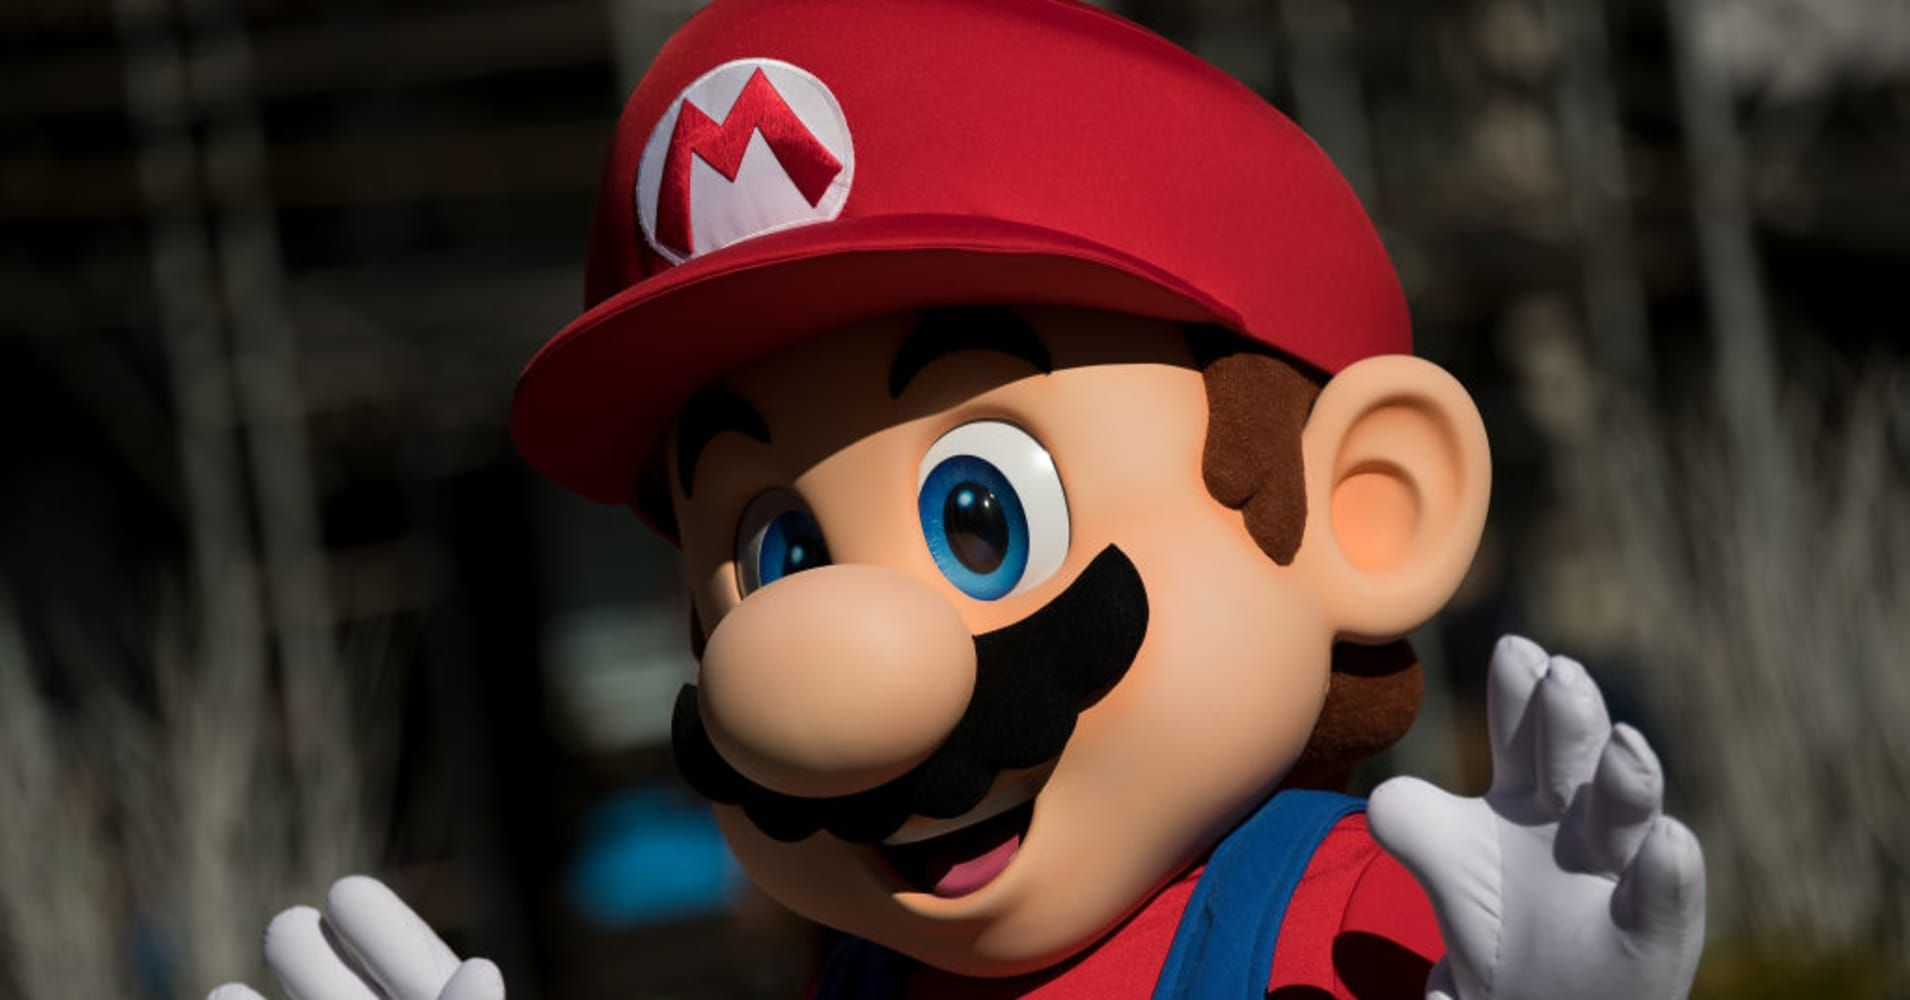 Nintendo adds $2.2 billion to market cap as shares touch 8-year high following release of major game - CNBC